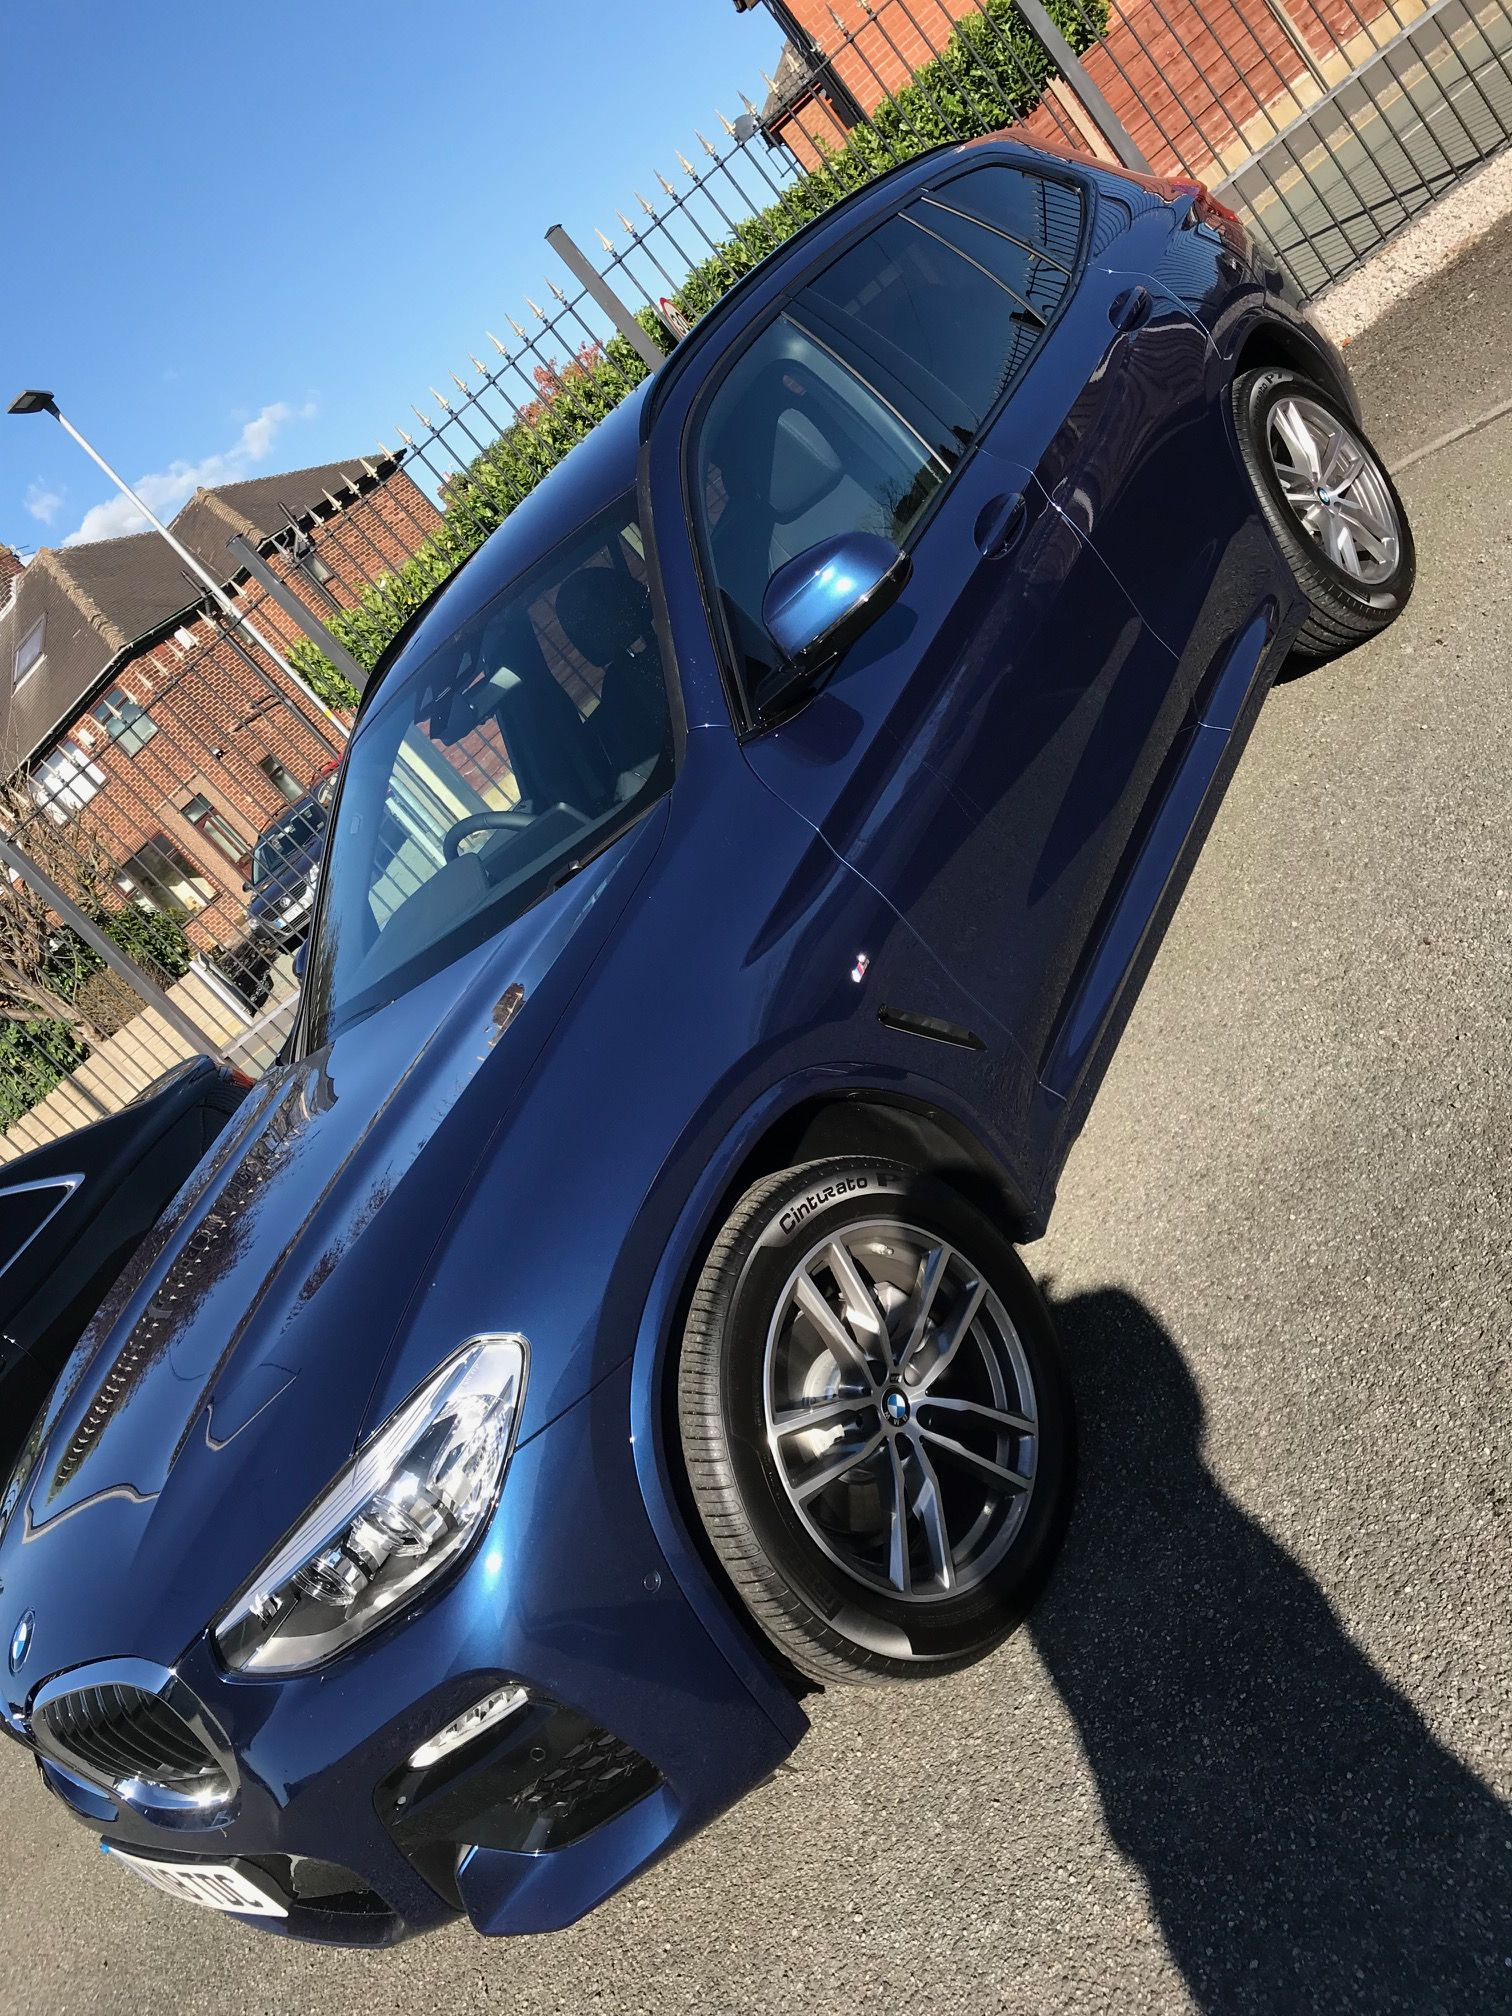 The BMW X3 DIESEL ESTATE xDrive20d M Sport 5dr Step [Auto